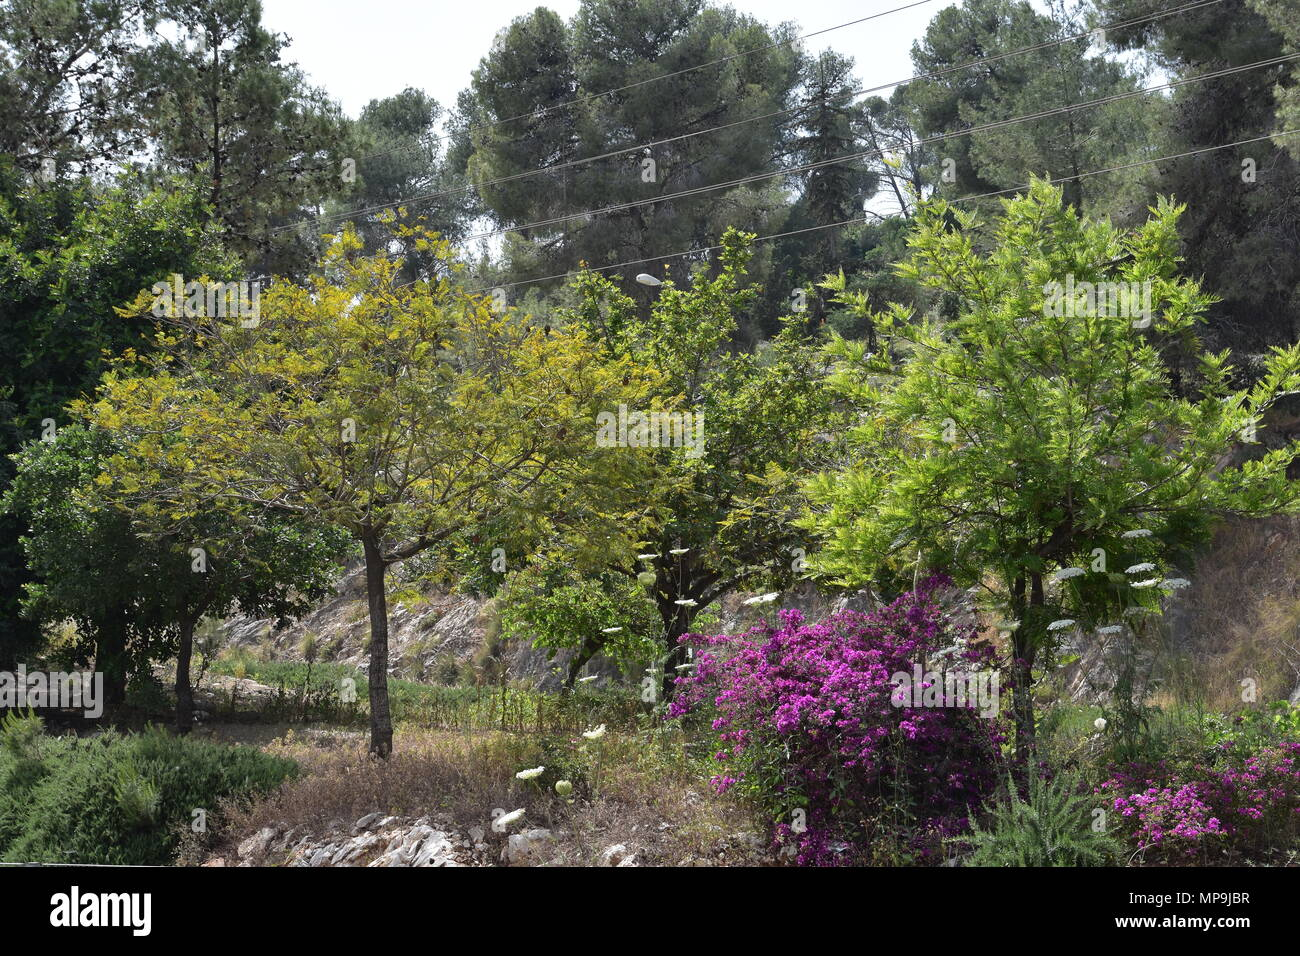 Acacias, pines and flowering plants the bottom of Mount Carmel, Israel. - Stock Image